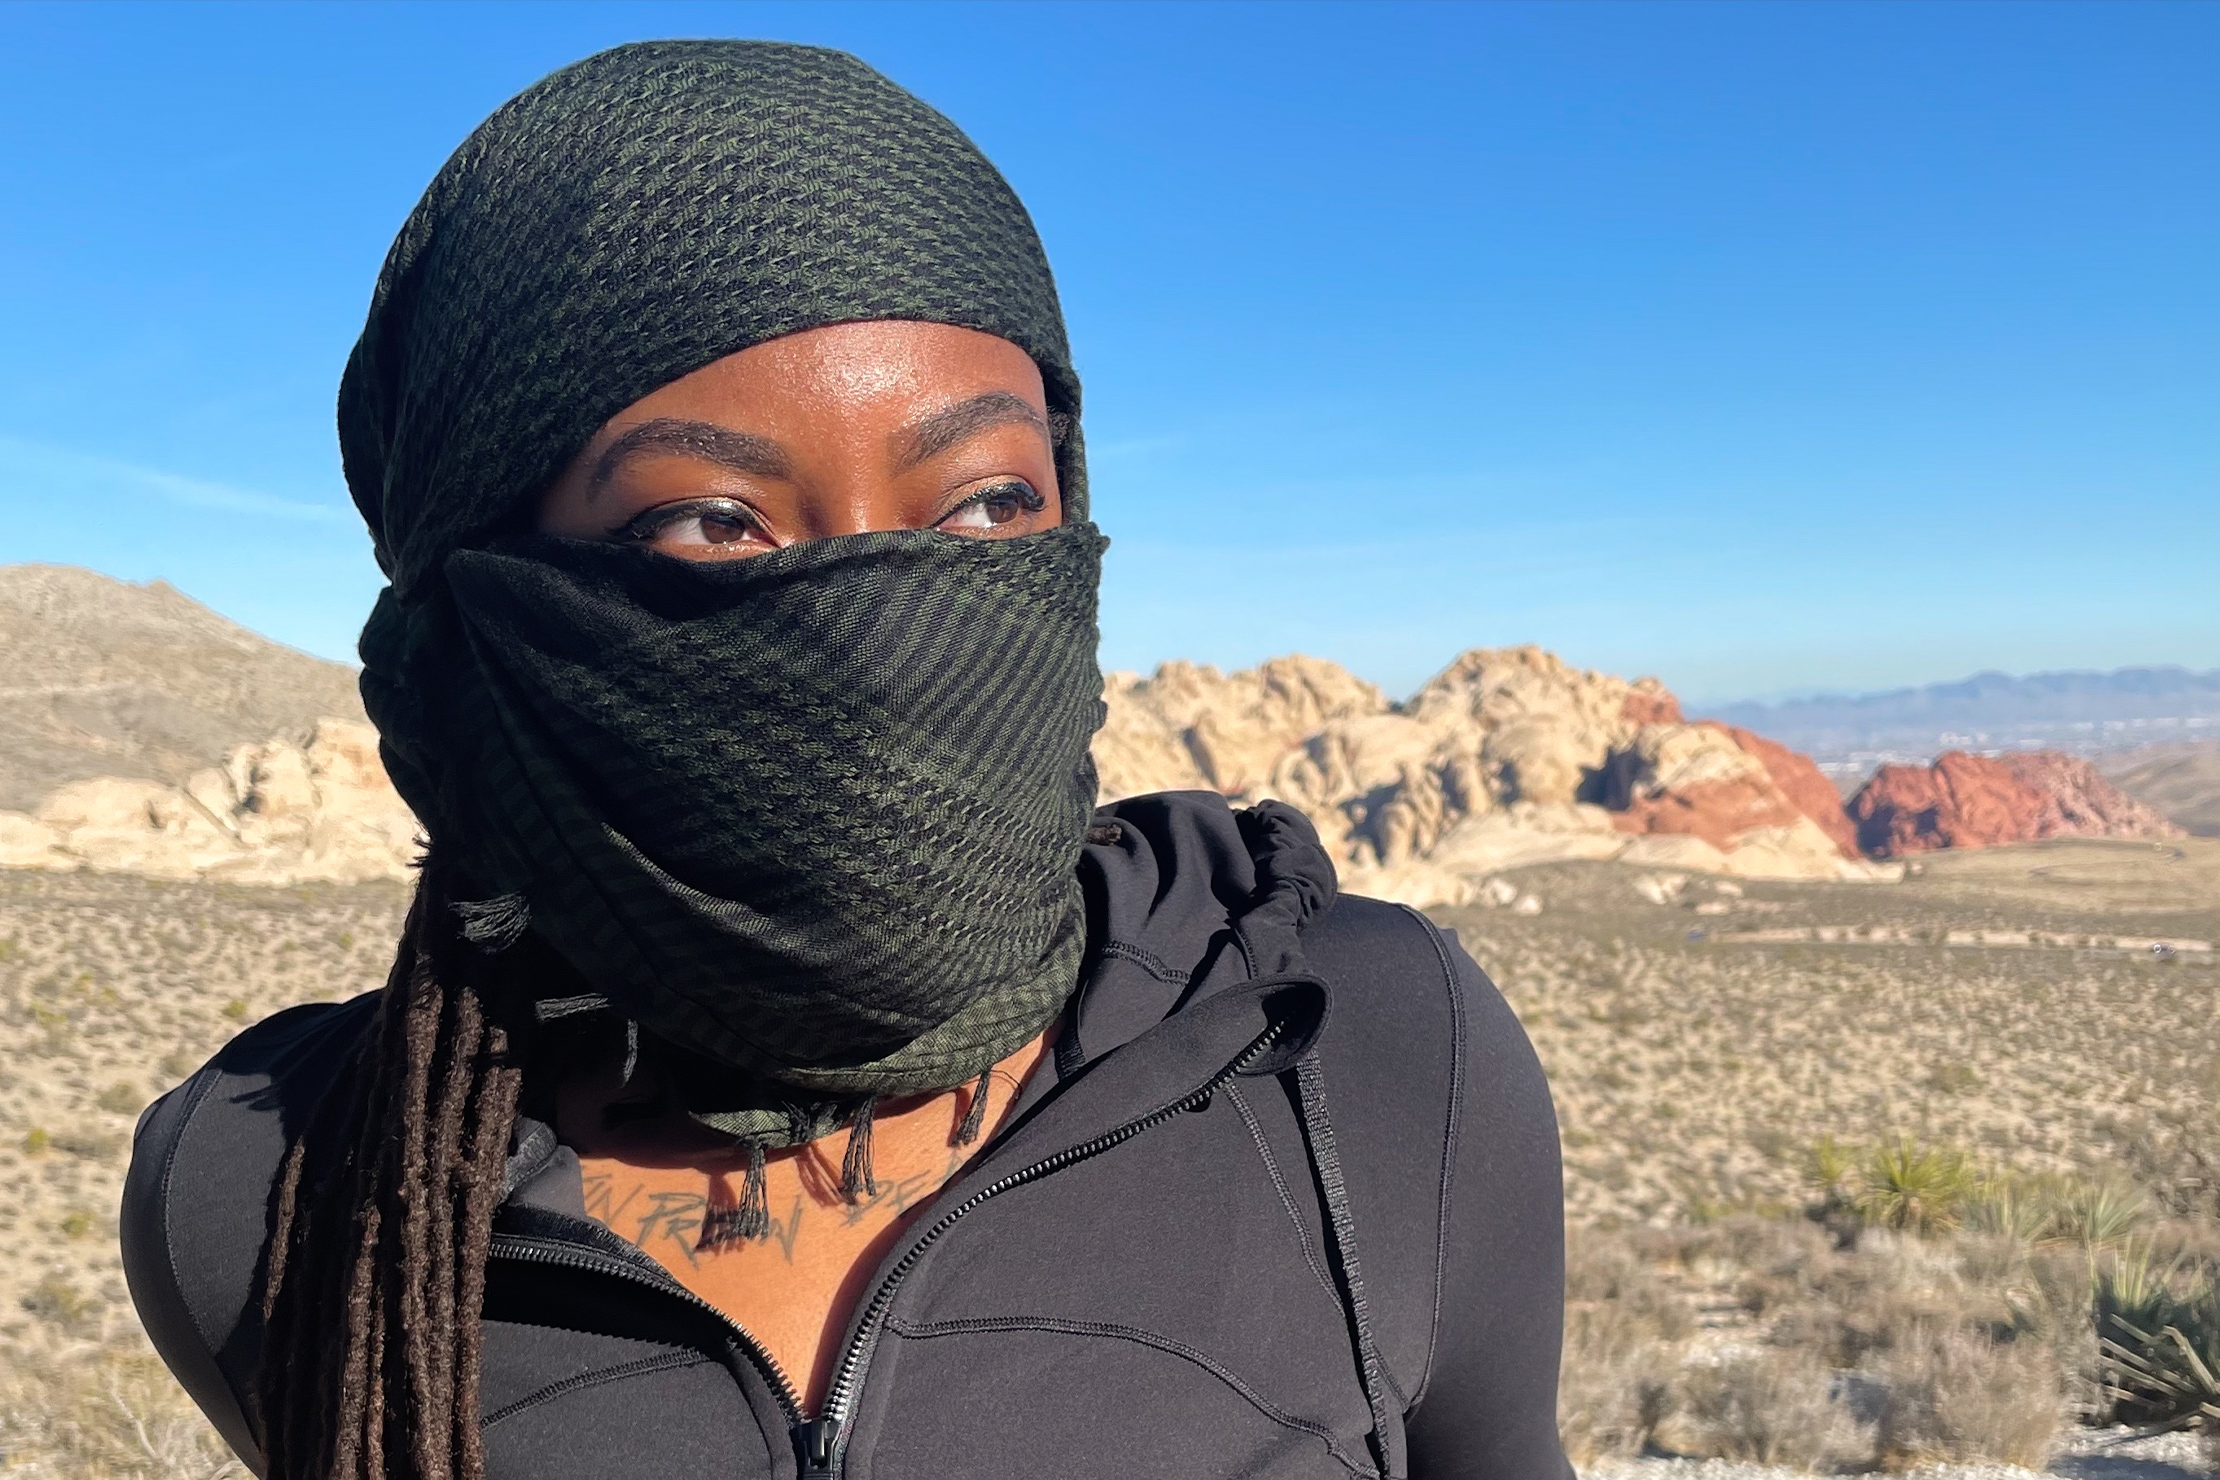 GORUCK Shemagh at Red Rock Canyon